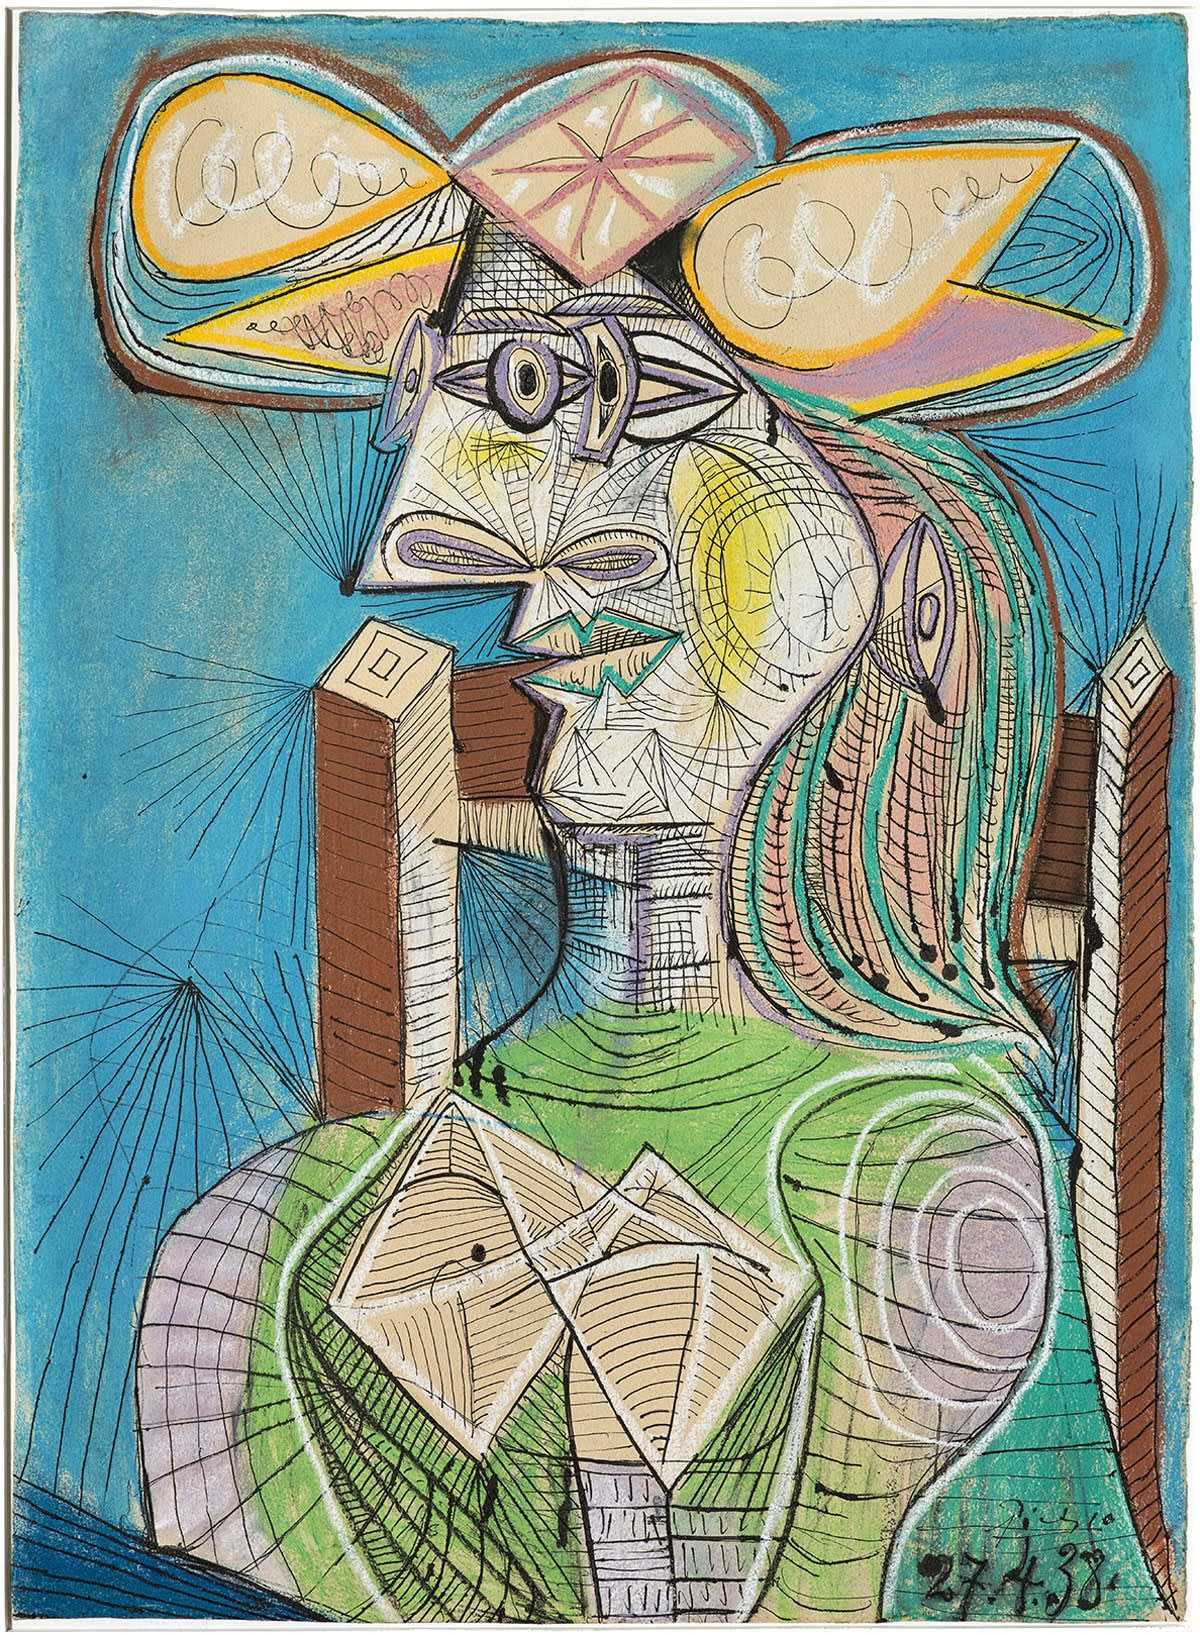 Picasso and Paper | Royal Academy of Arts, London, 25 January - 13 April 2020